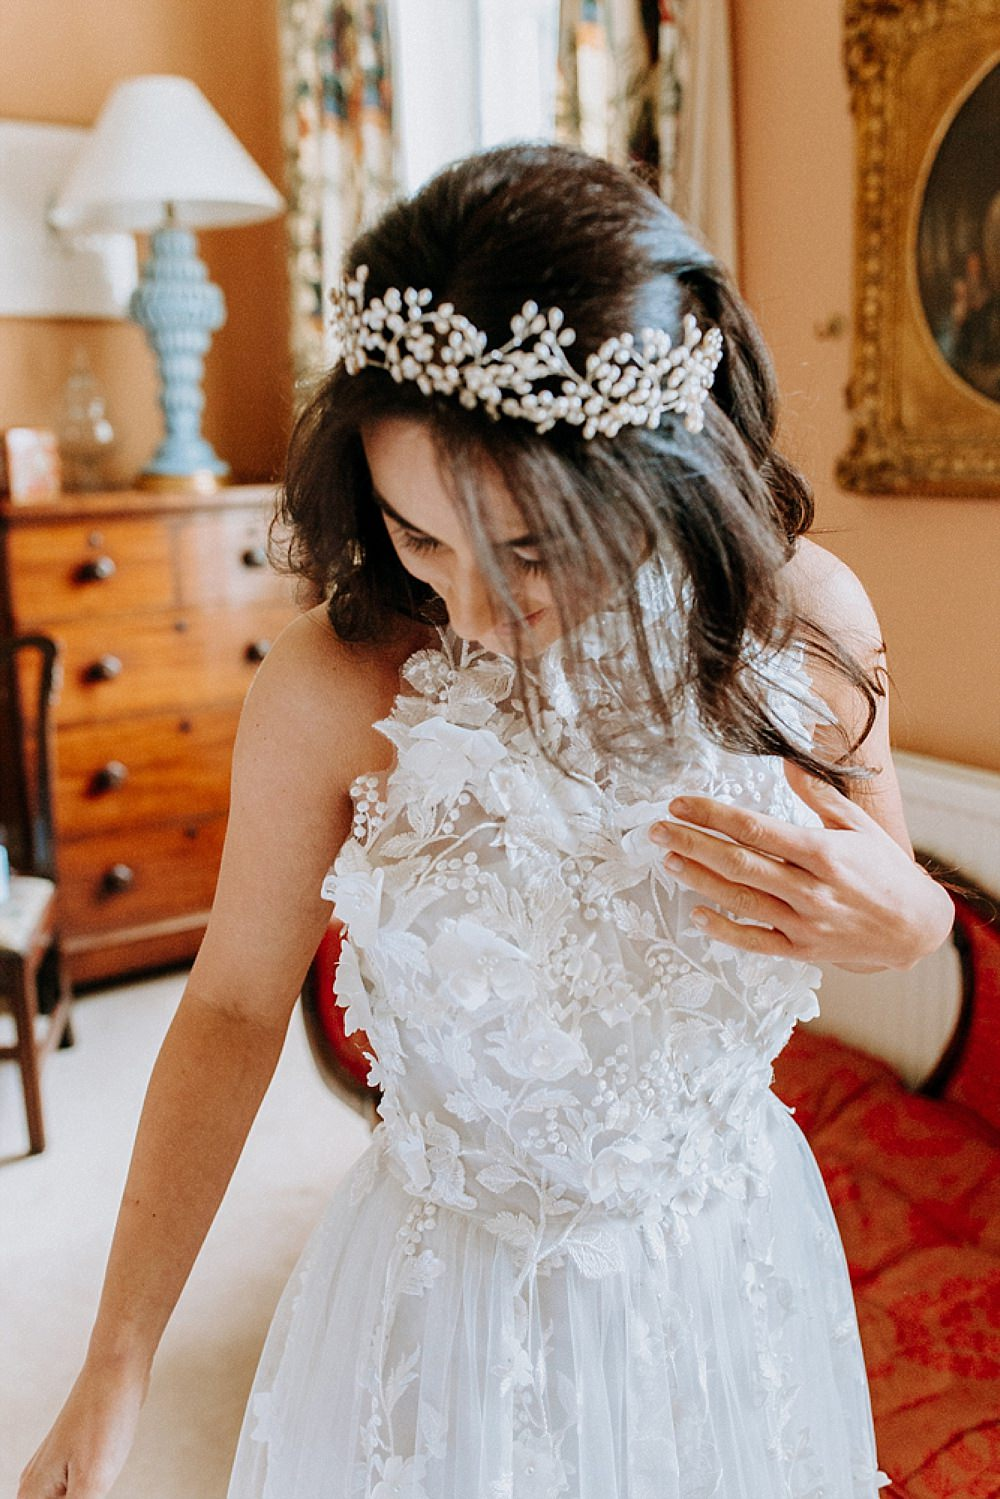 Headpiece Tiara Crown Accessory Bride Bridal Blue Gold Wedding Ideas Ailsa Reeve Photography